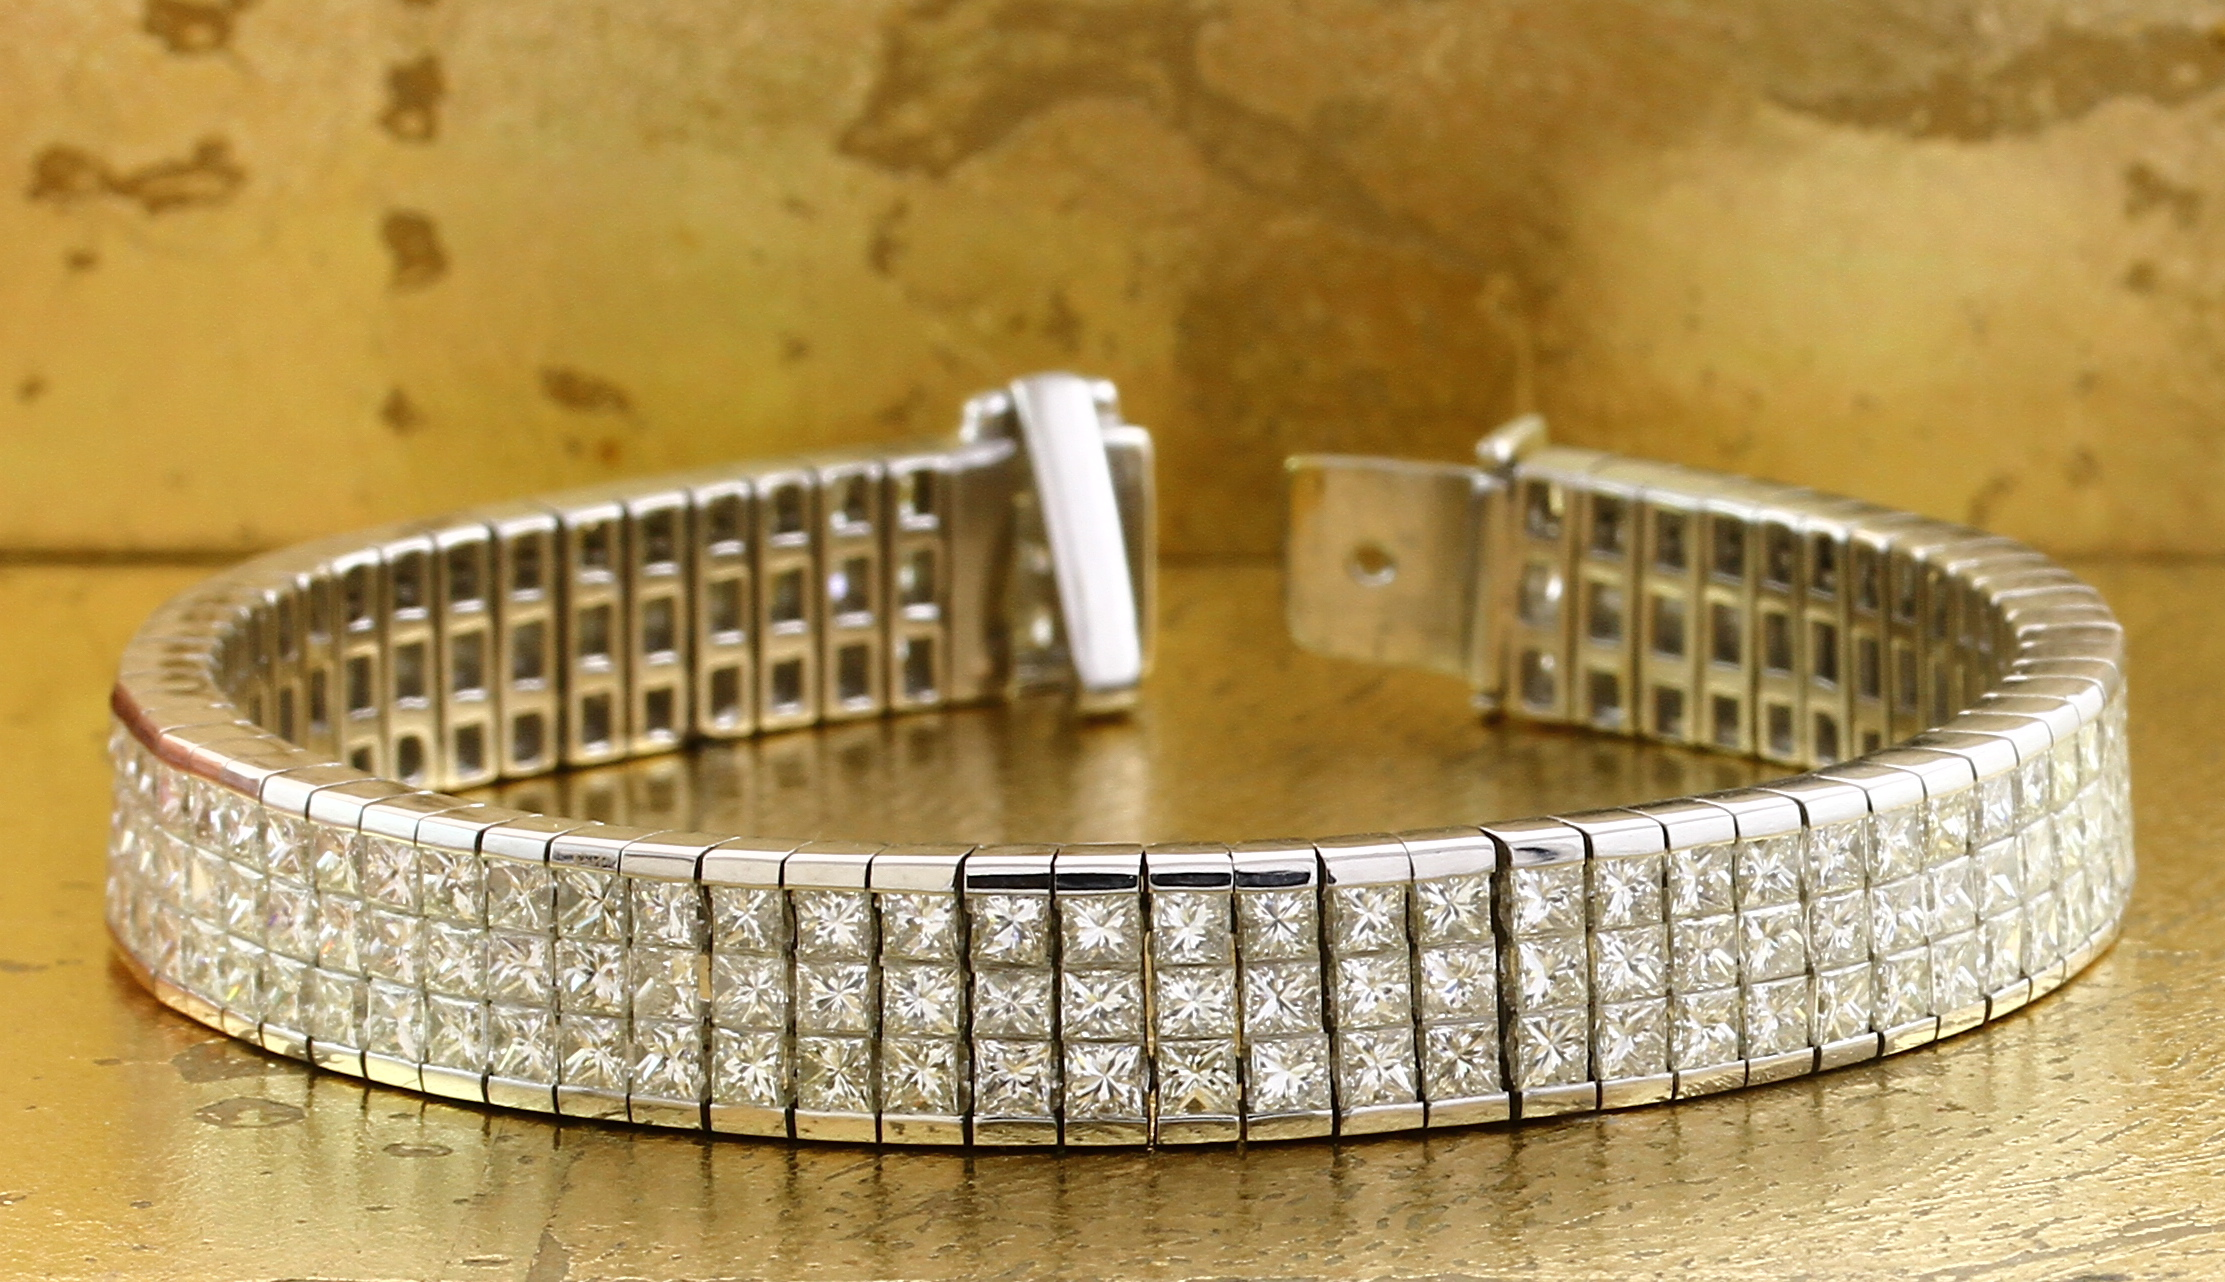 Bracelet 3 Rows Diamonds in Invisible Setting - Item No: 0010634